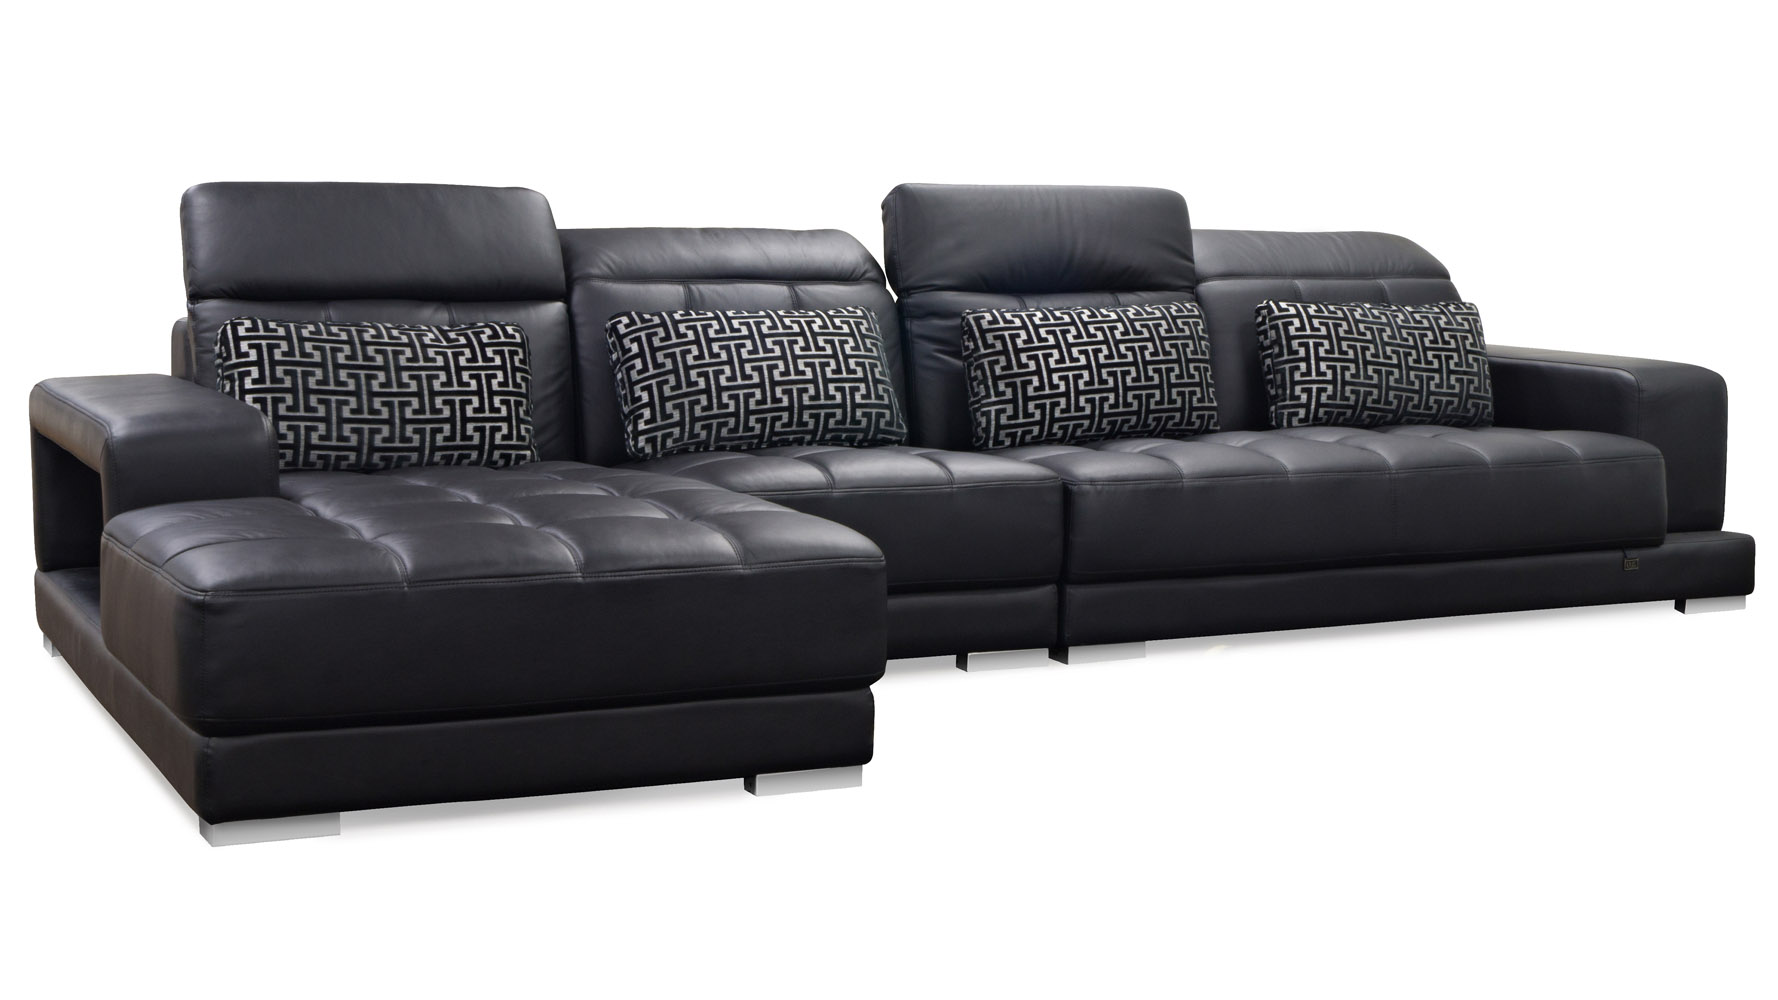 Conrad black leather sectional zuri furniture for Black leather chaise